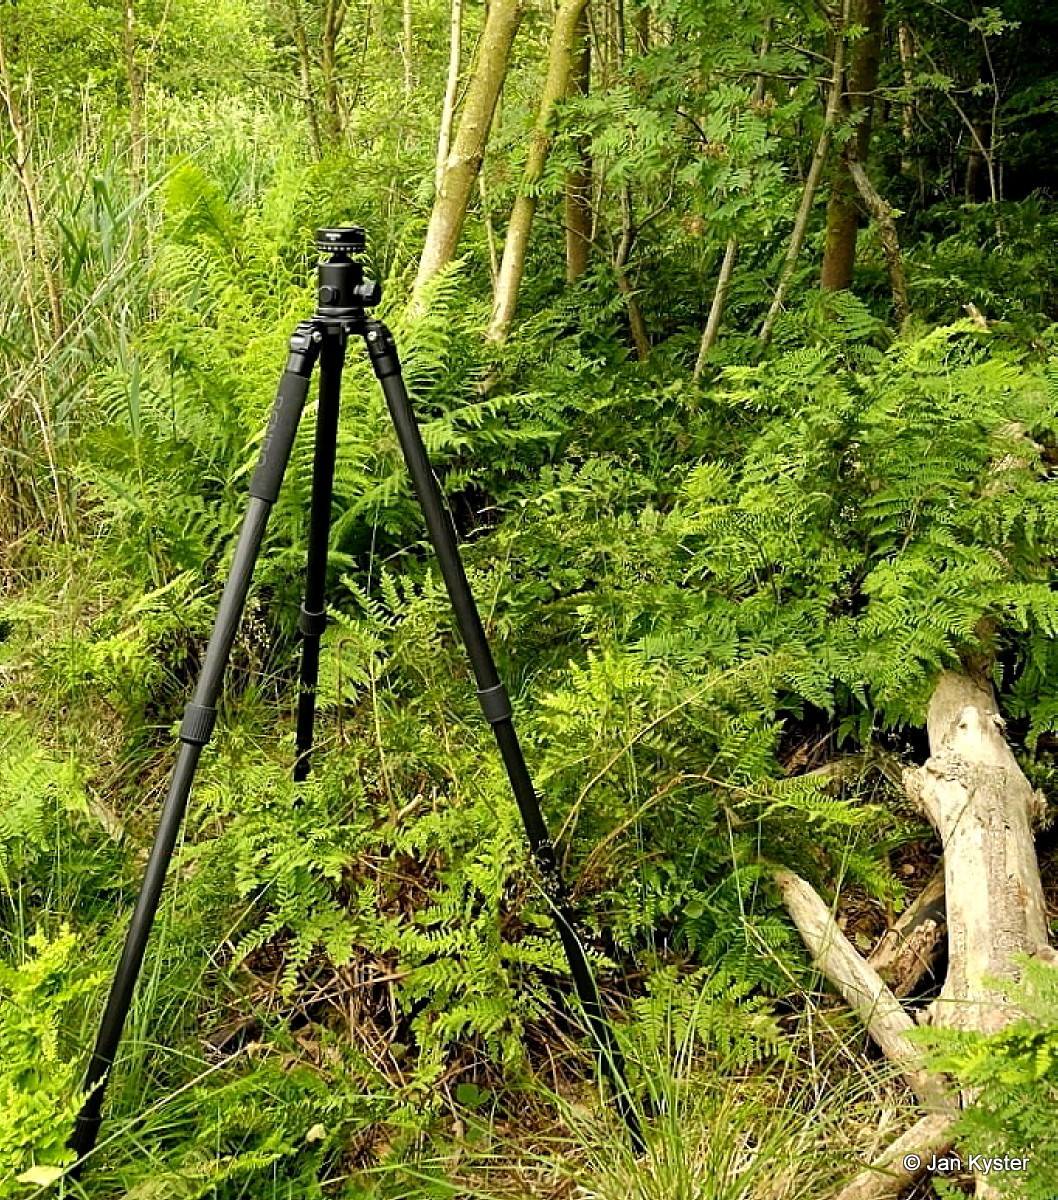 Benro C3770T CF Tripod fully extended in woods